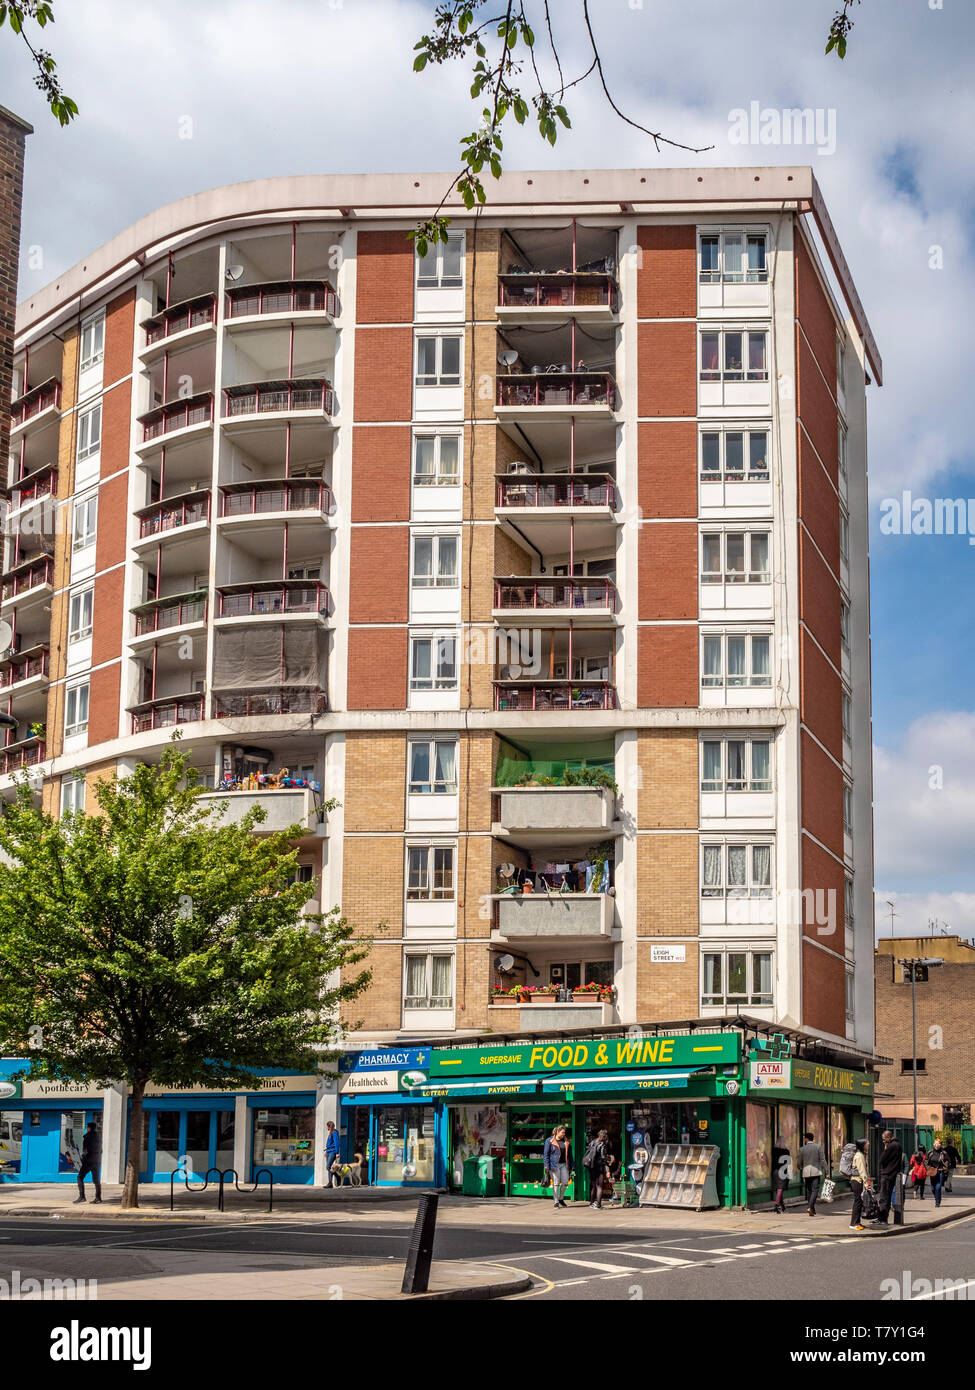 Medway Court Block of flats and convenience store, Bloomsbury, Camden, London, UK. - Stock Image